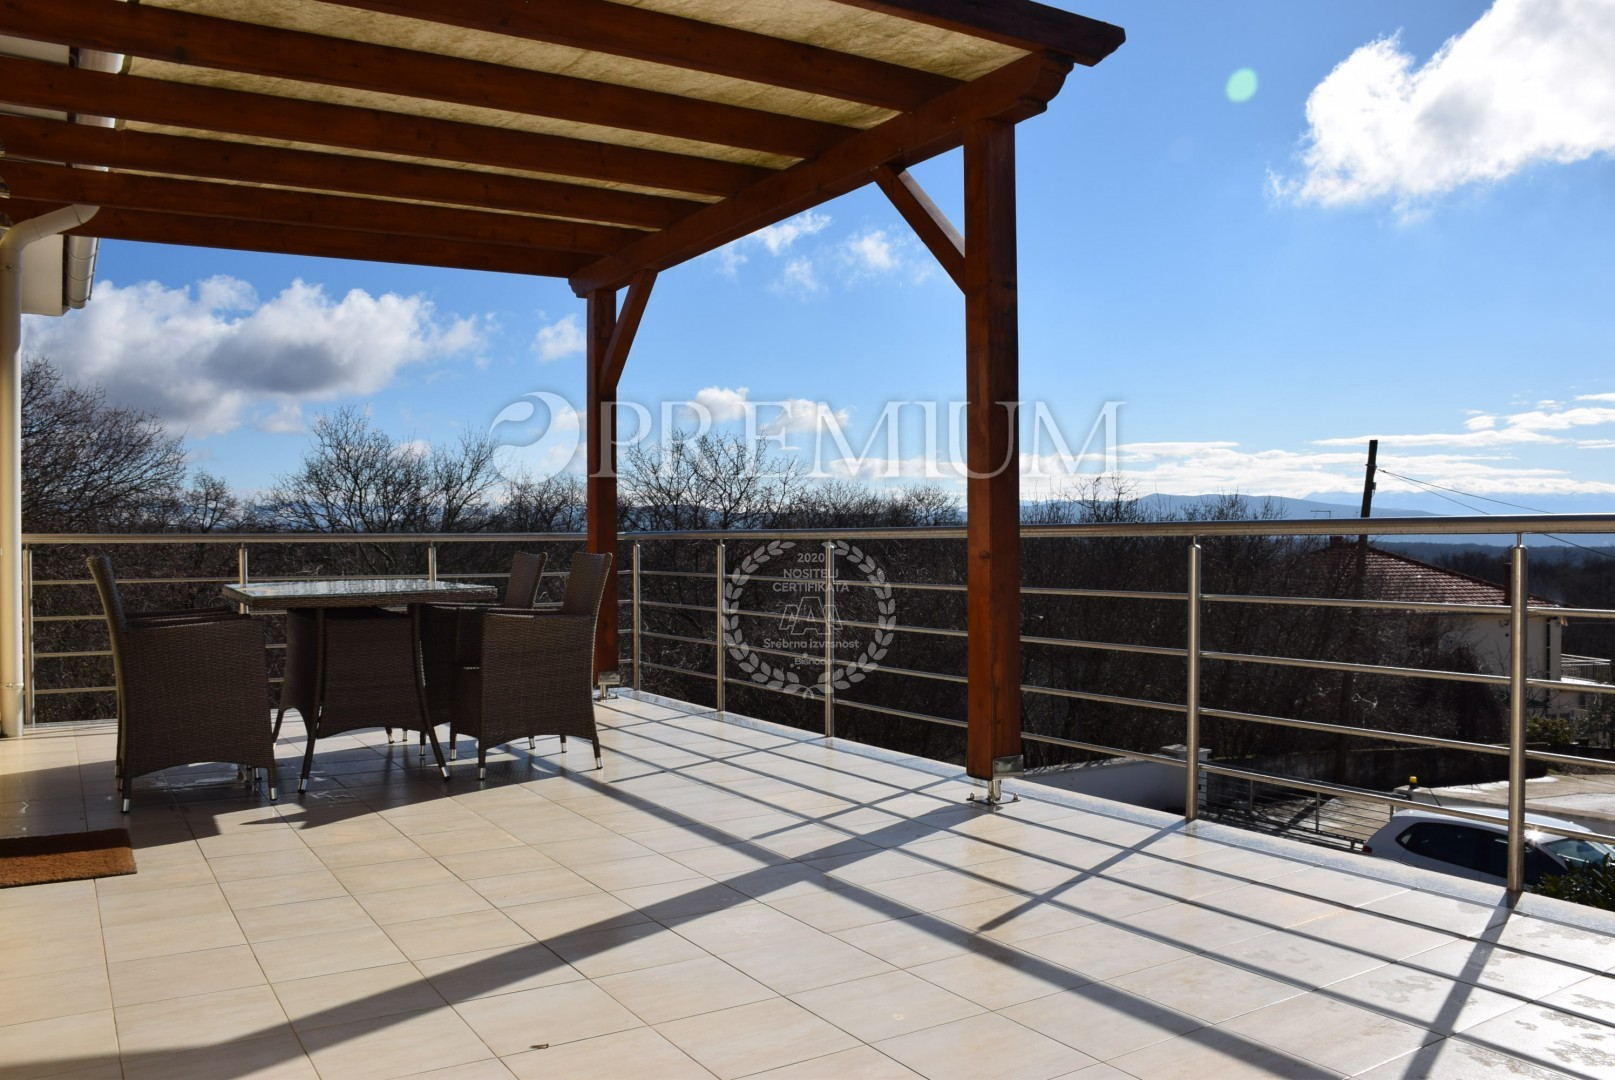 ... Bathroom And Terrace Of 25 M2. The House Is Located In A Quiet Location  And Has A Beautiful Panoramic View, While The Sea Is About 2000 Meters Away.